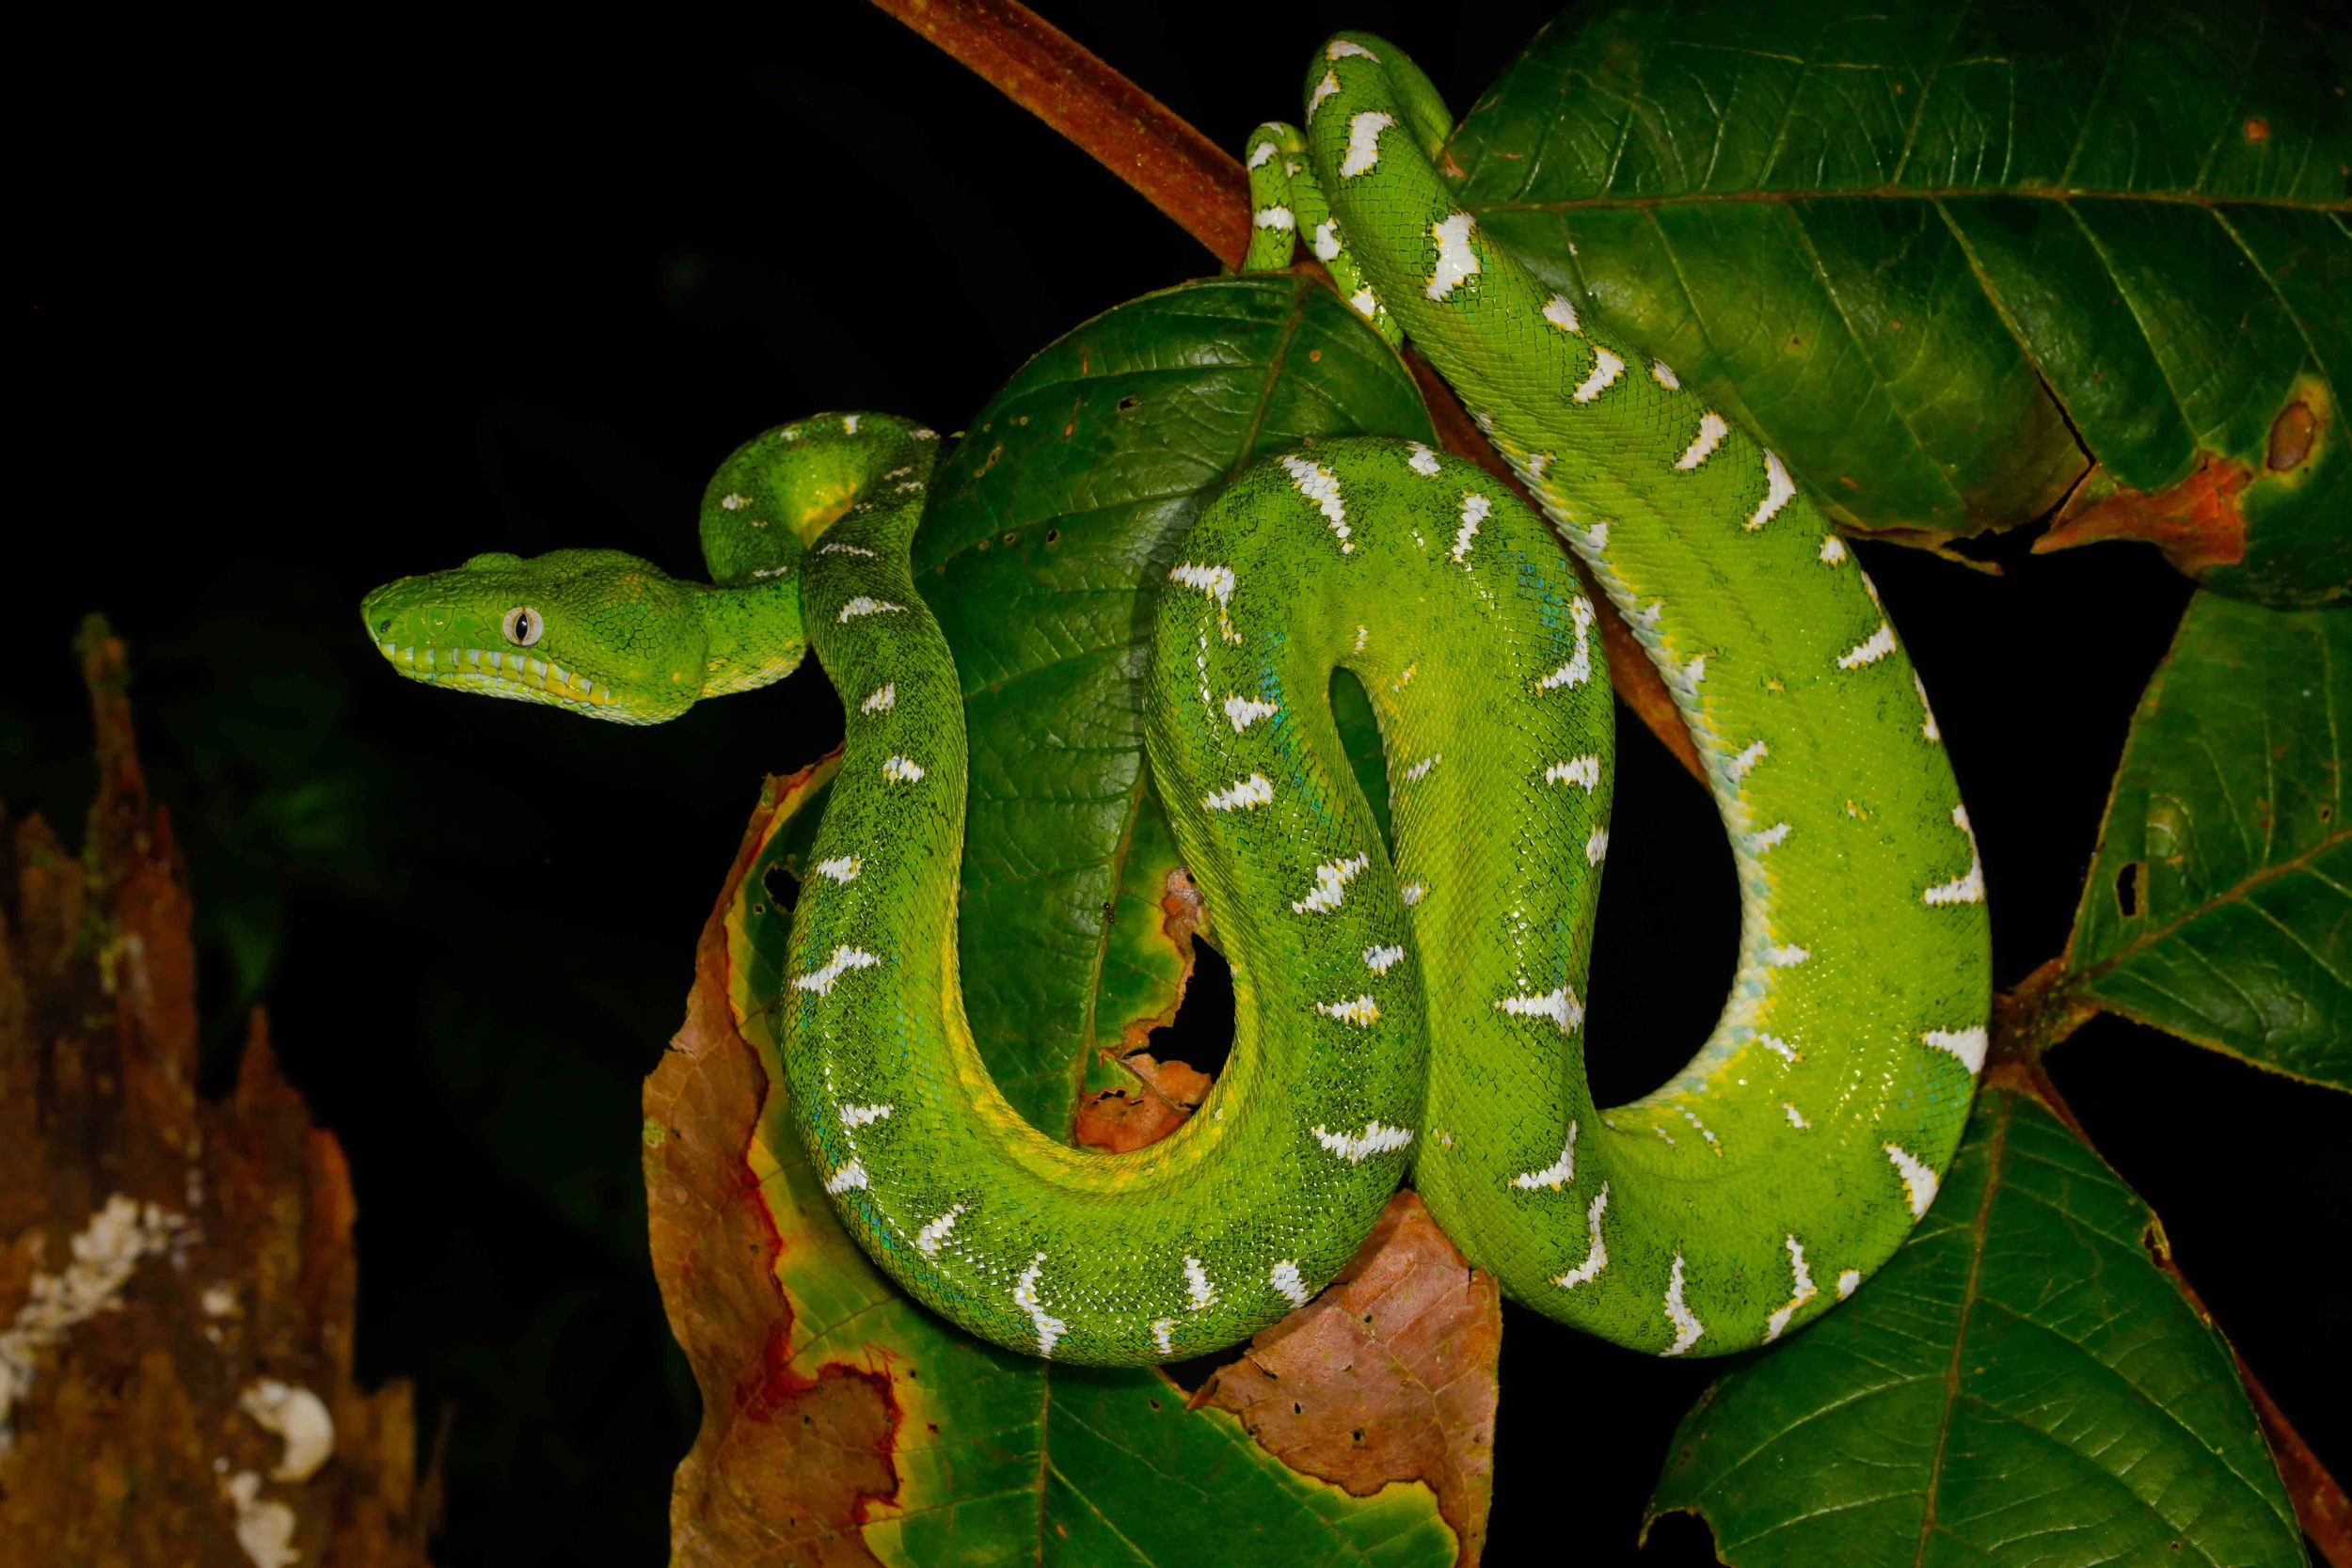 Corallus batesii, Emerald Tree Boa (Photo by Matt Cage)